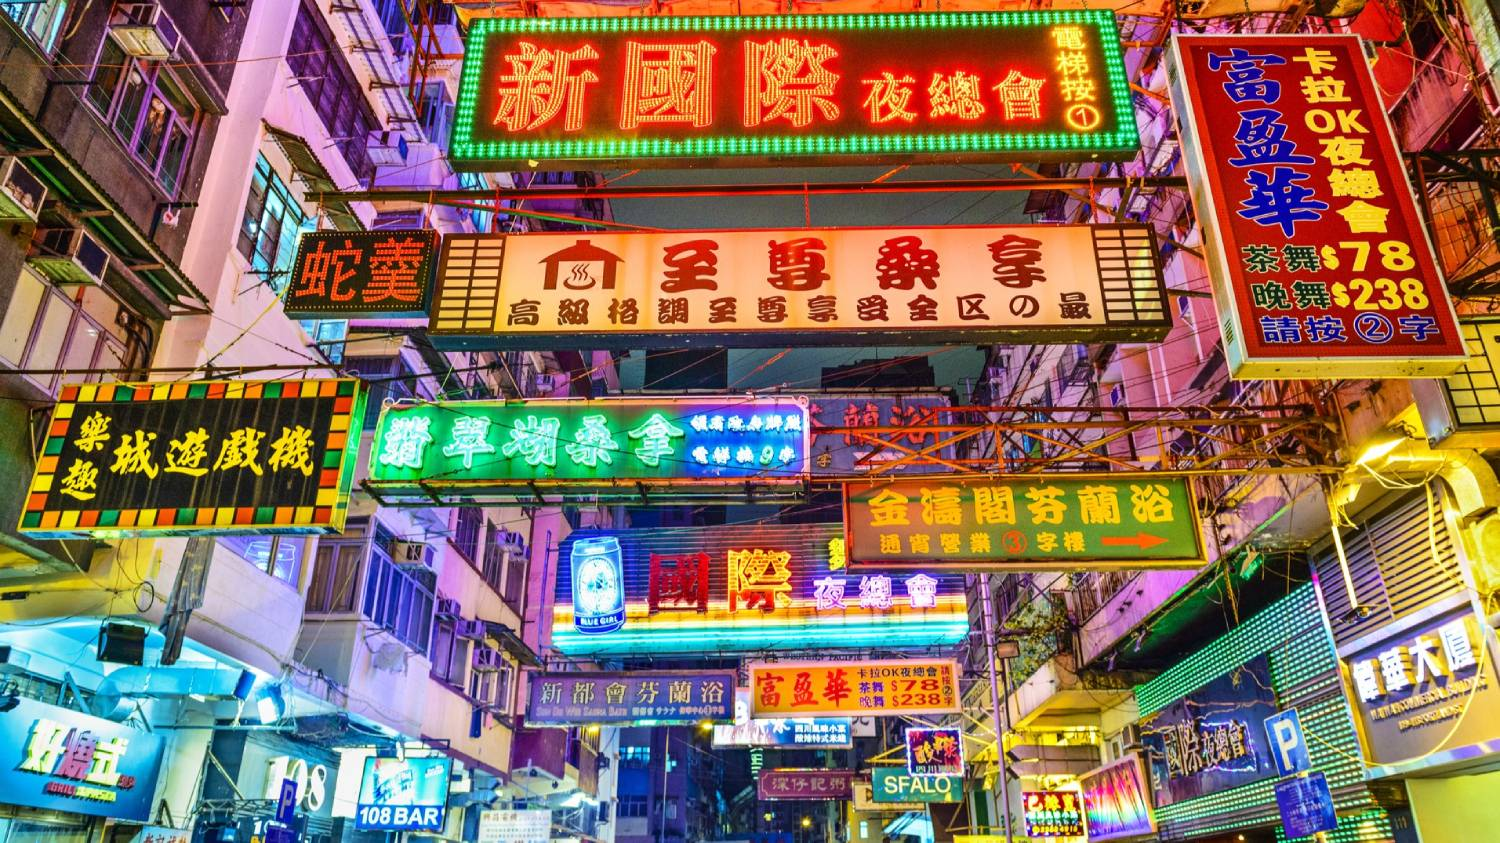 Kowloon - Things To Do In Hong Kong